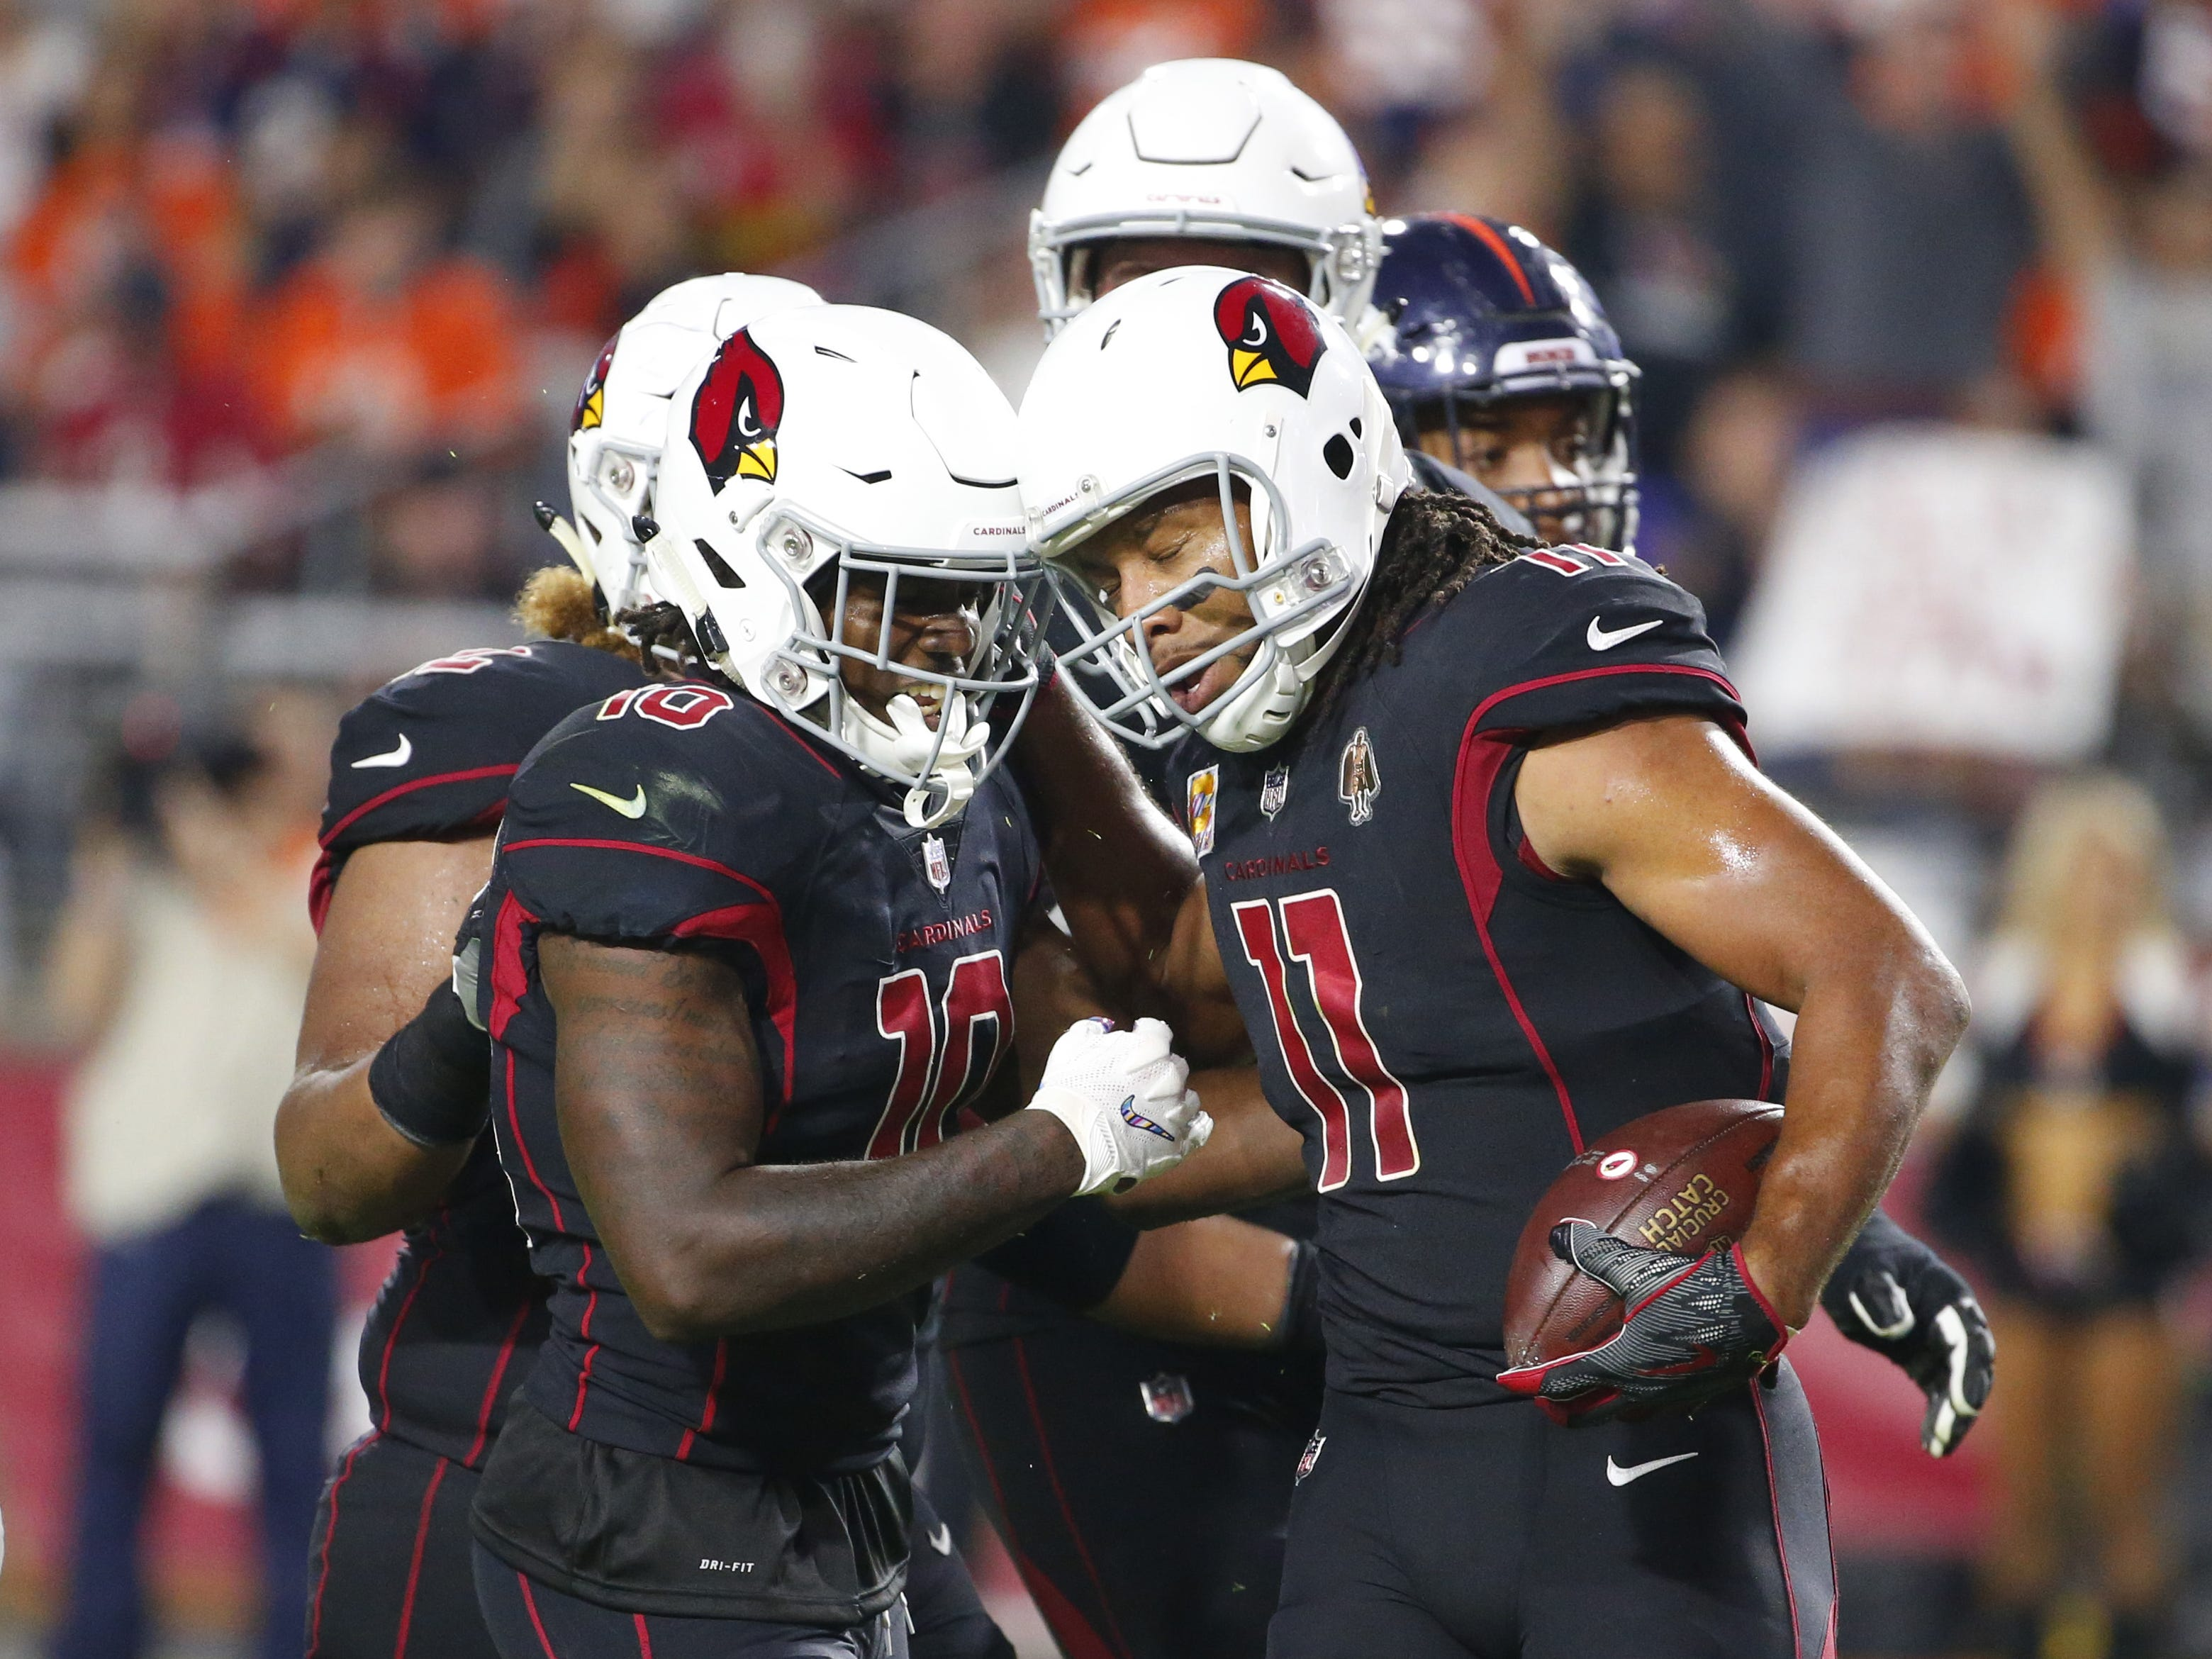 Arizona Cardinals wide receiver Larry Fitzgerald (11) celebrates his touchdown with his teammates during a football game against the Denver Broncos at State Farm Stadium in Glendale on October 18, 2018.